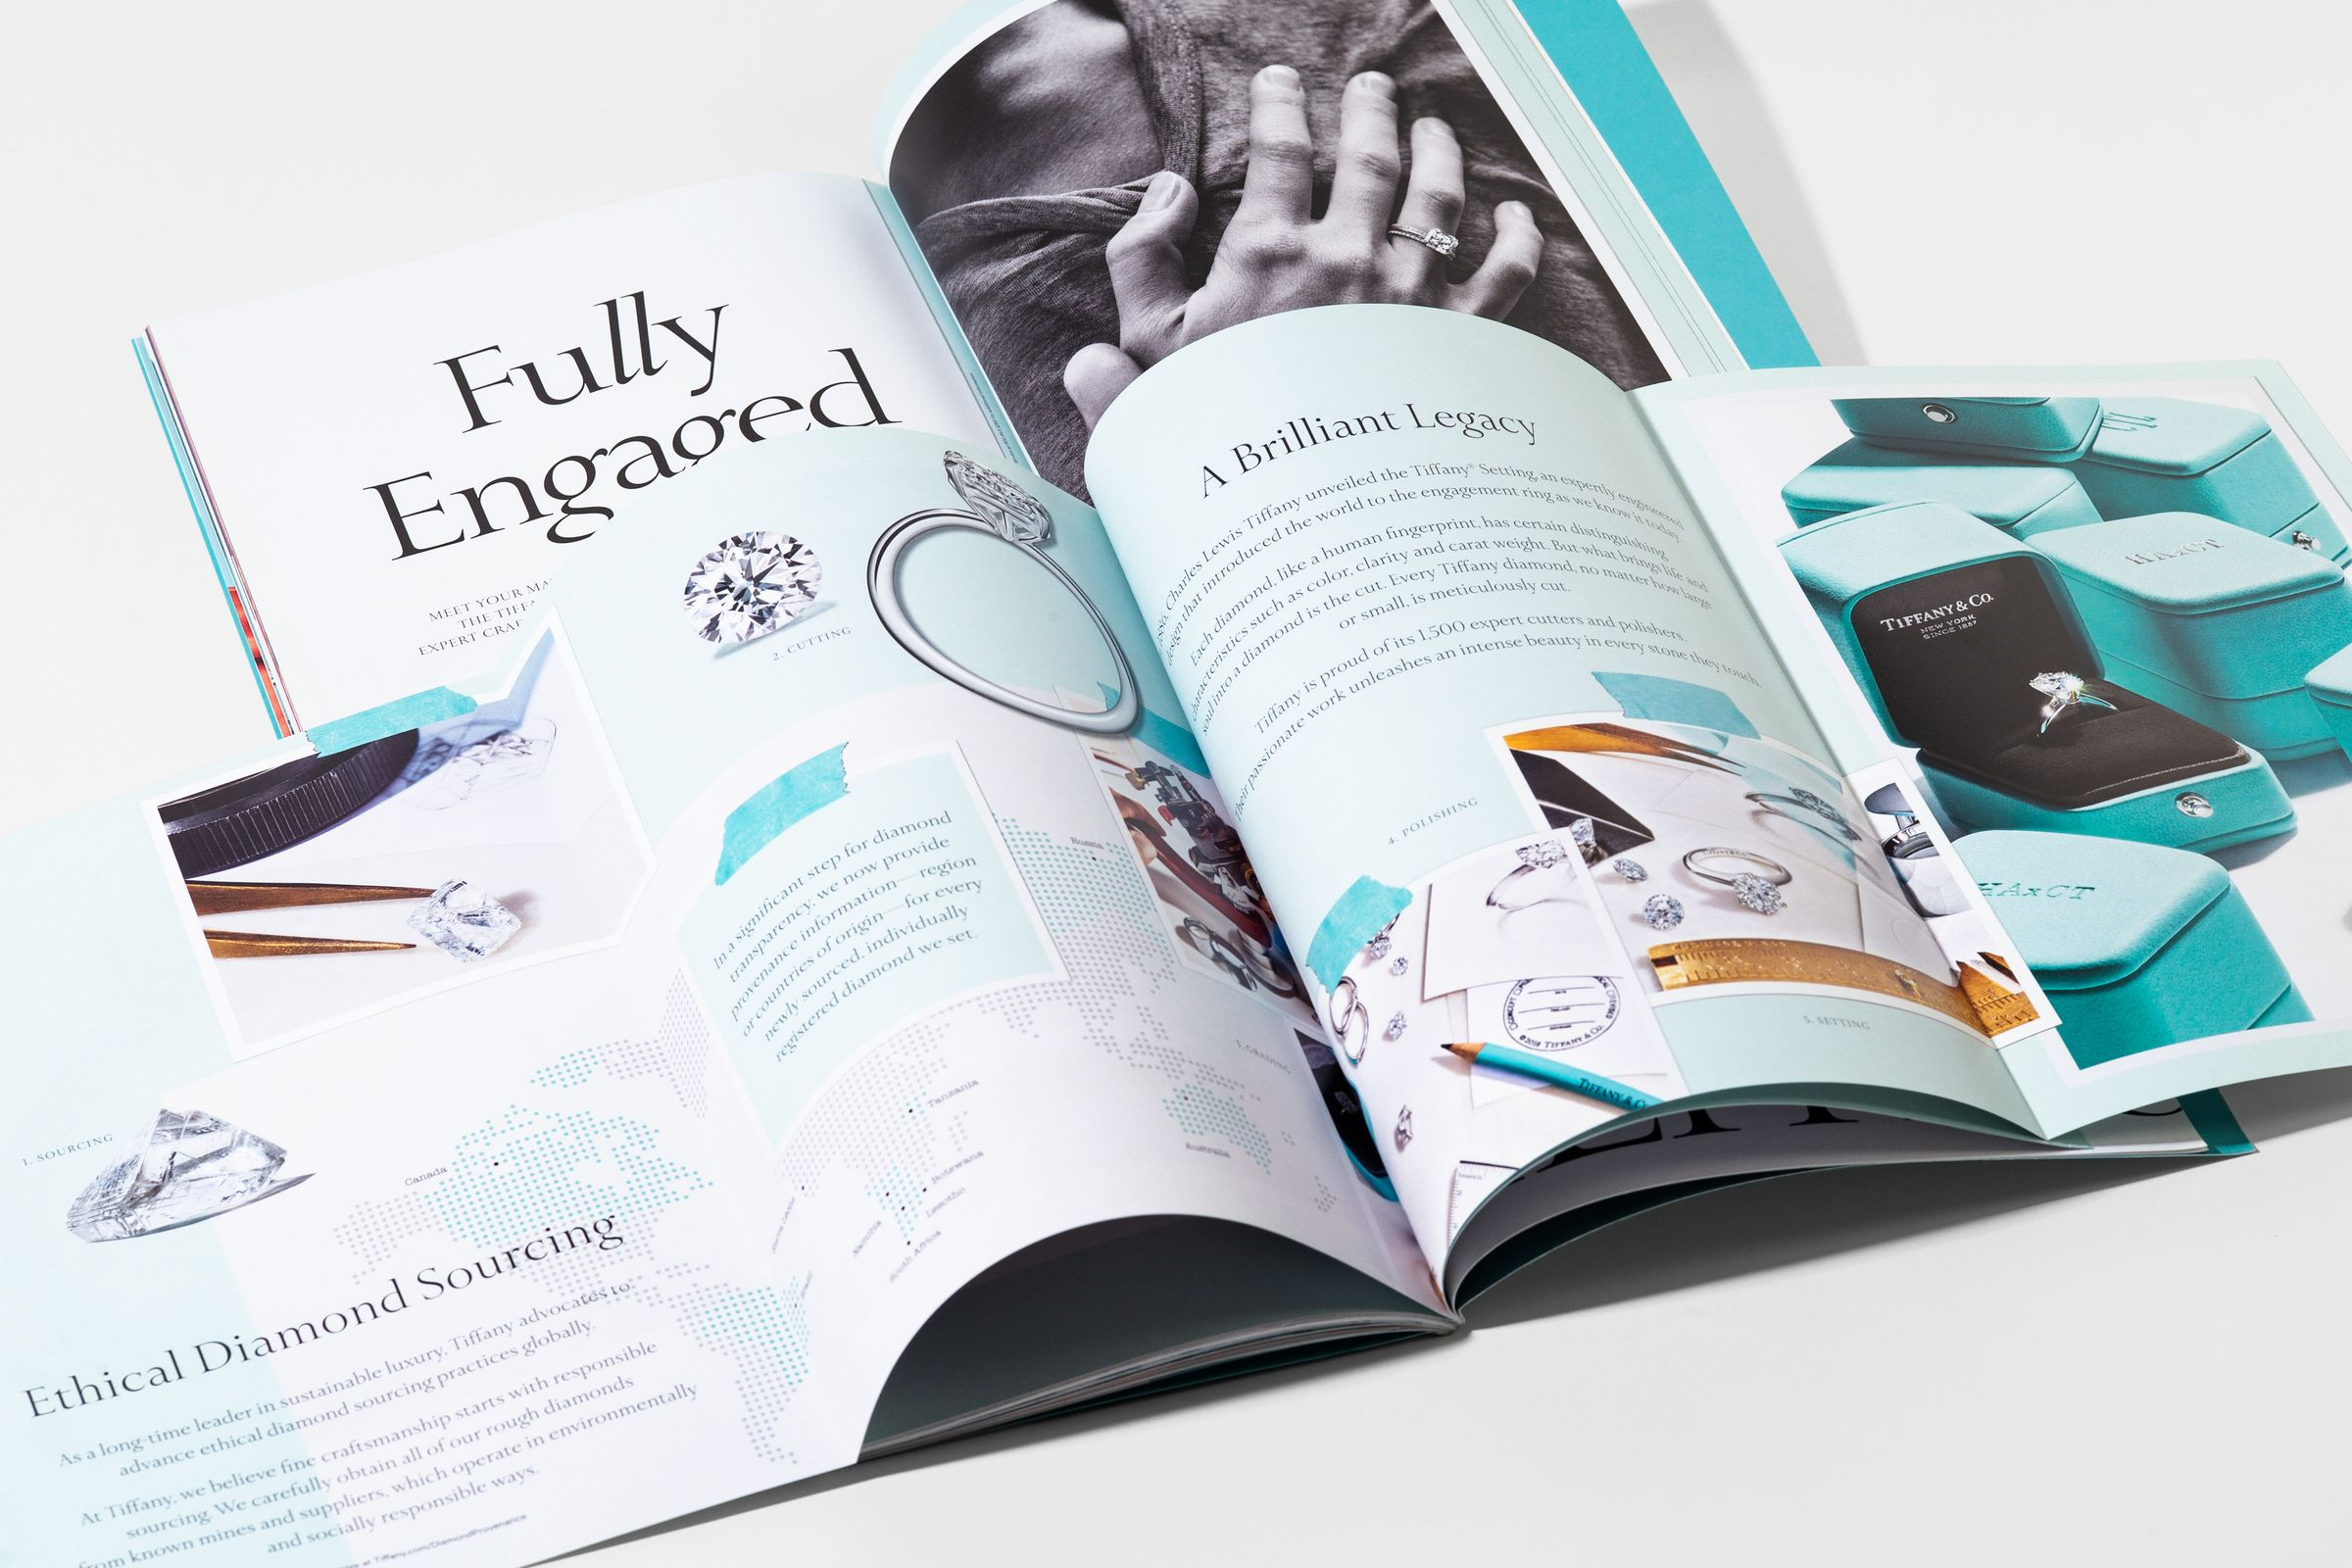 This is Tiffany magazine issue 9 engagement story spread design